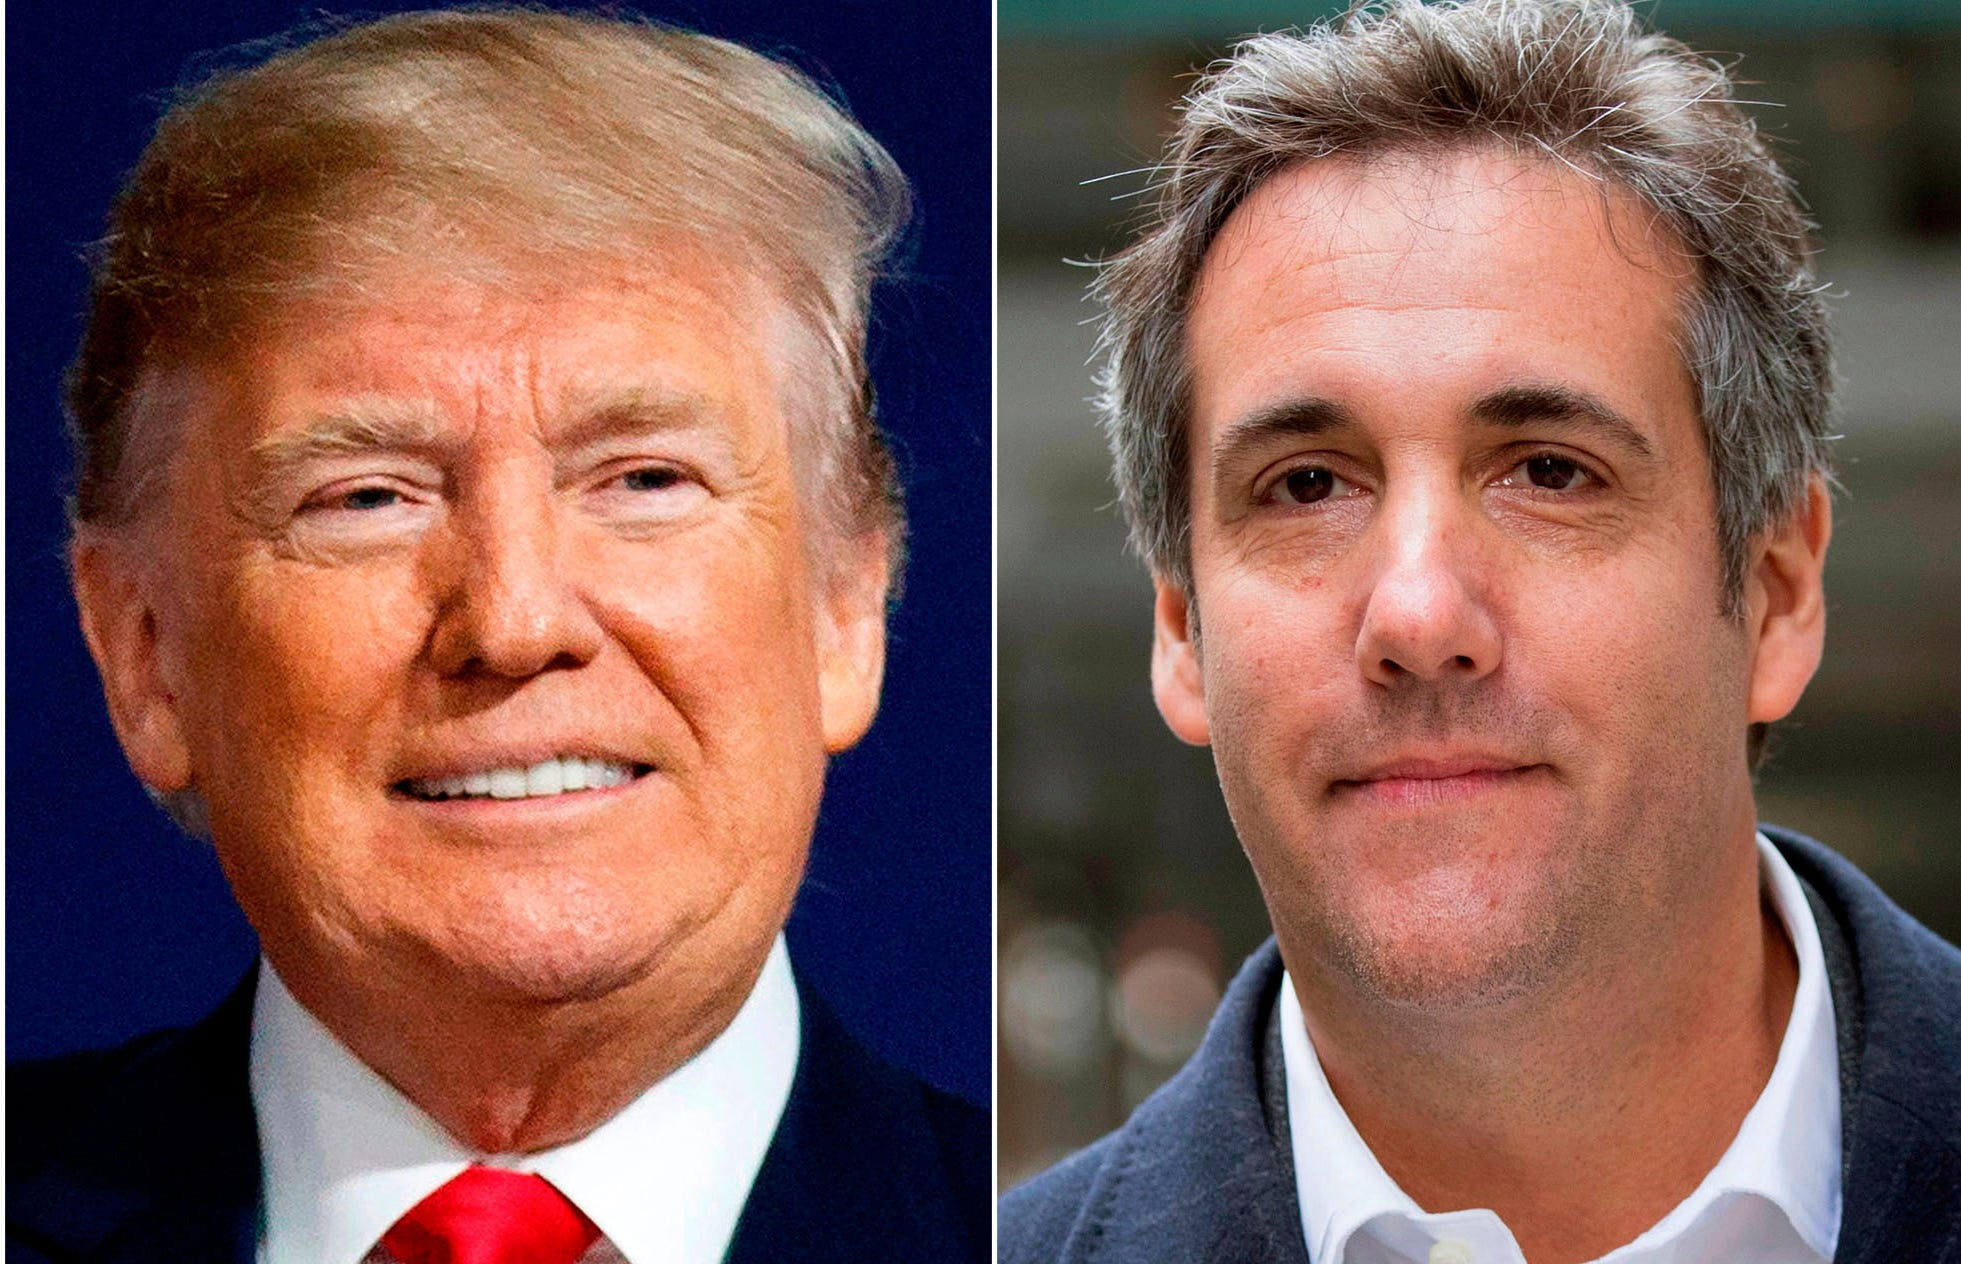 President Donald Trump's former personal attorney and fixer Michael Cohen pleaded guilty on Nov. 29, 2018, to one count of lying to Congress about his work on a project to build a Trump Tower in Moscow. (Photo: AP)